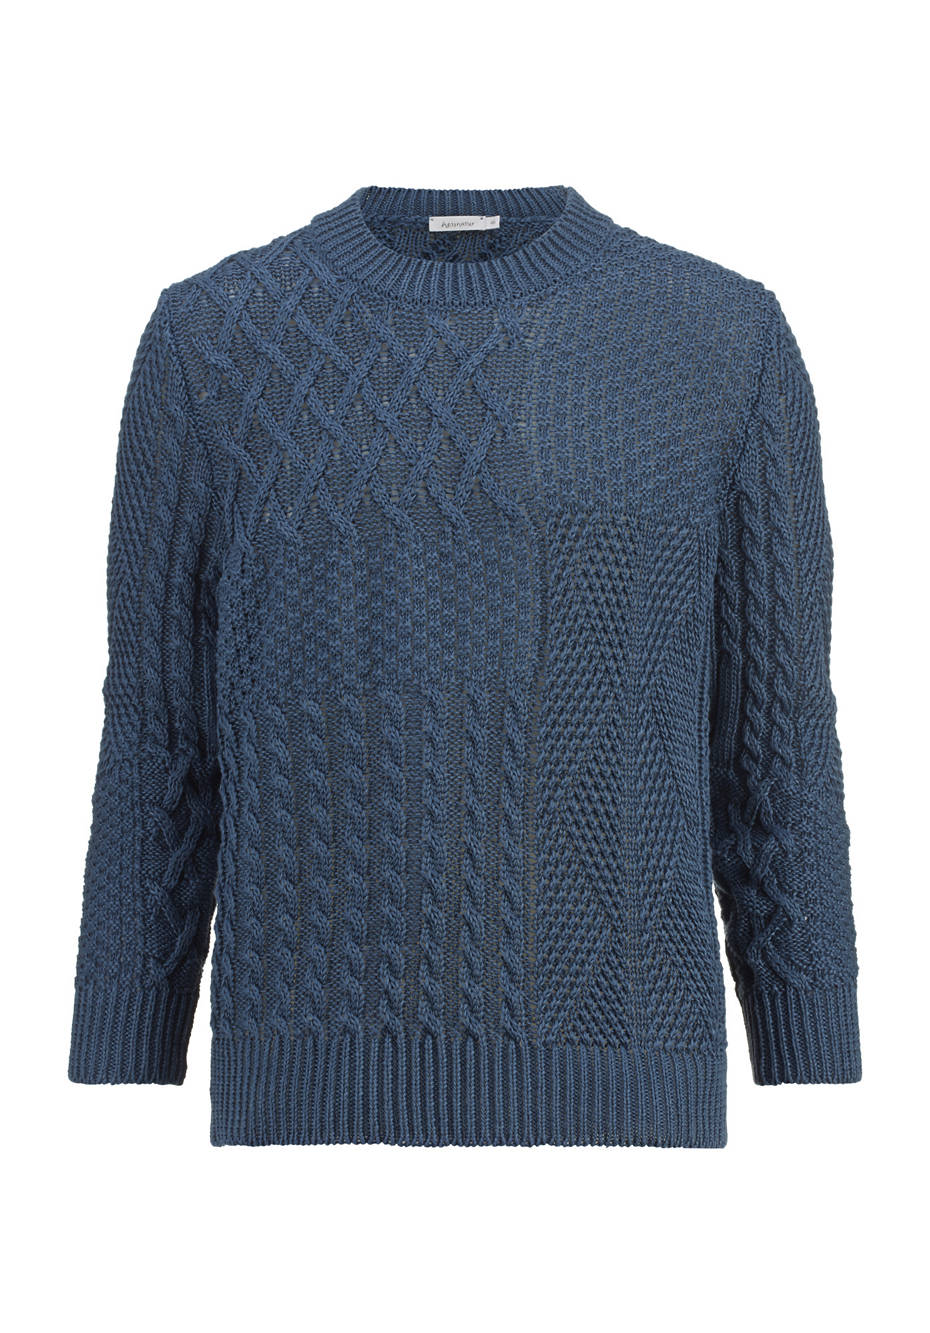 Structured knit sweater made from pure linen